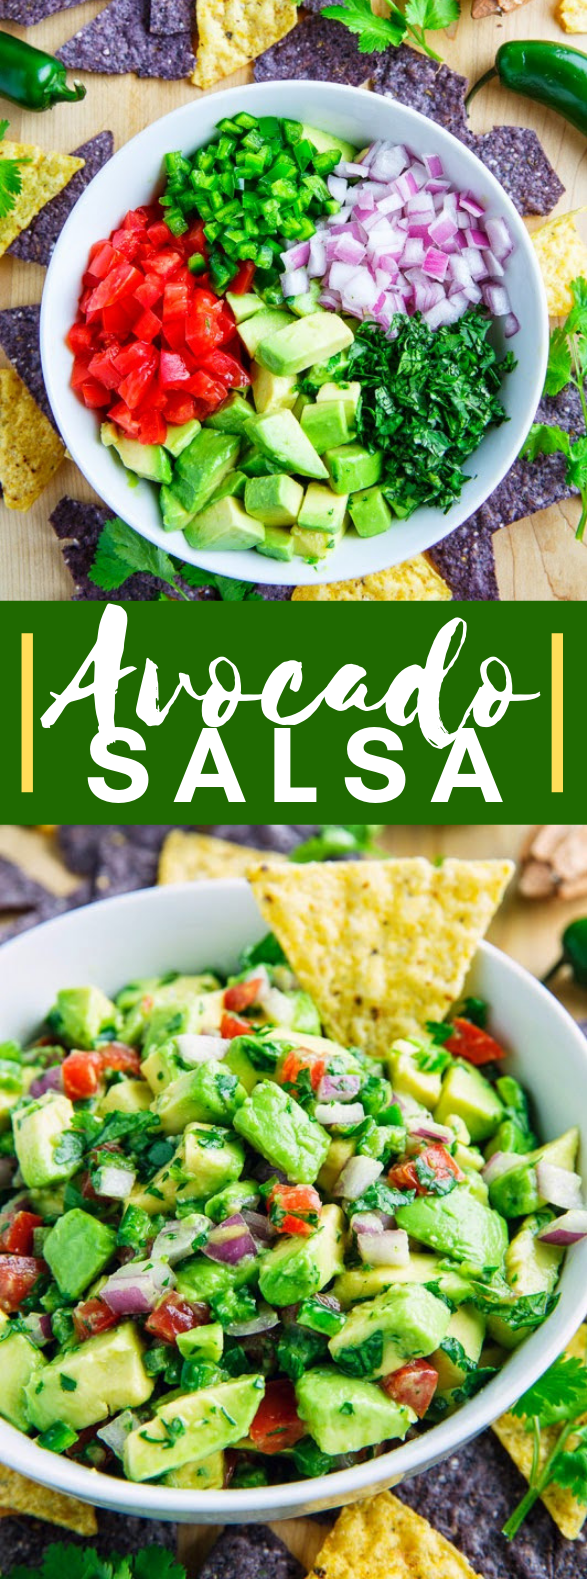 Avocado Salsa #vegetarian #appetizers